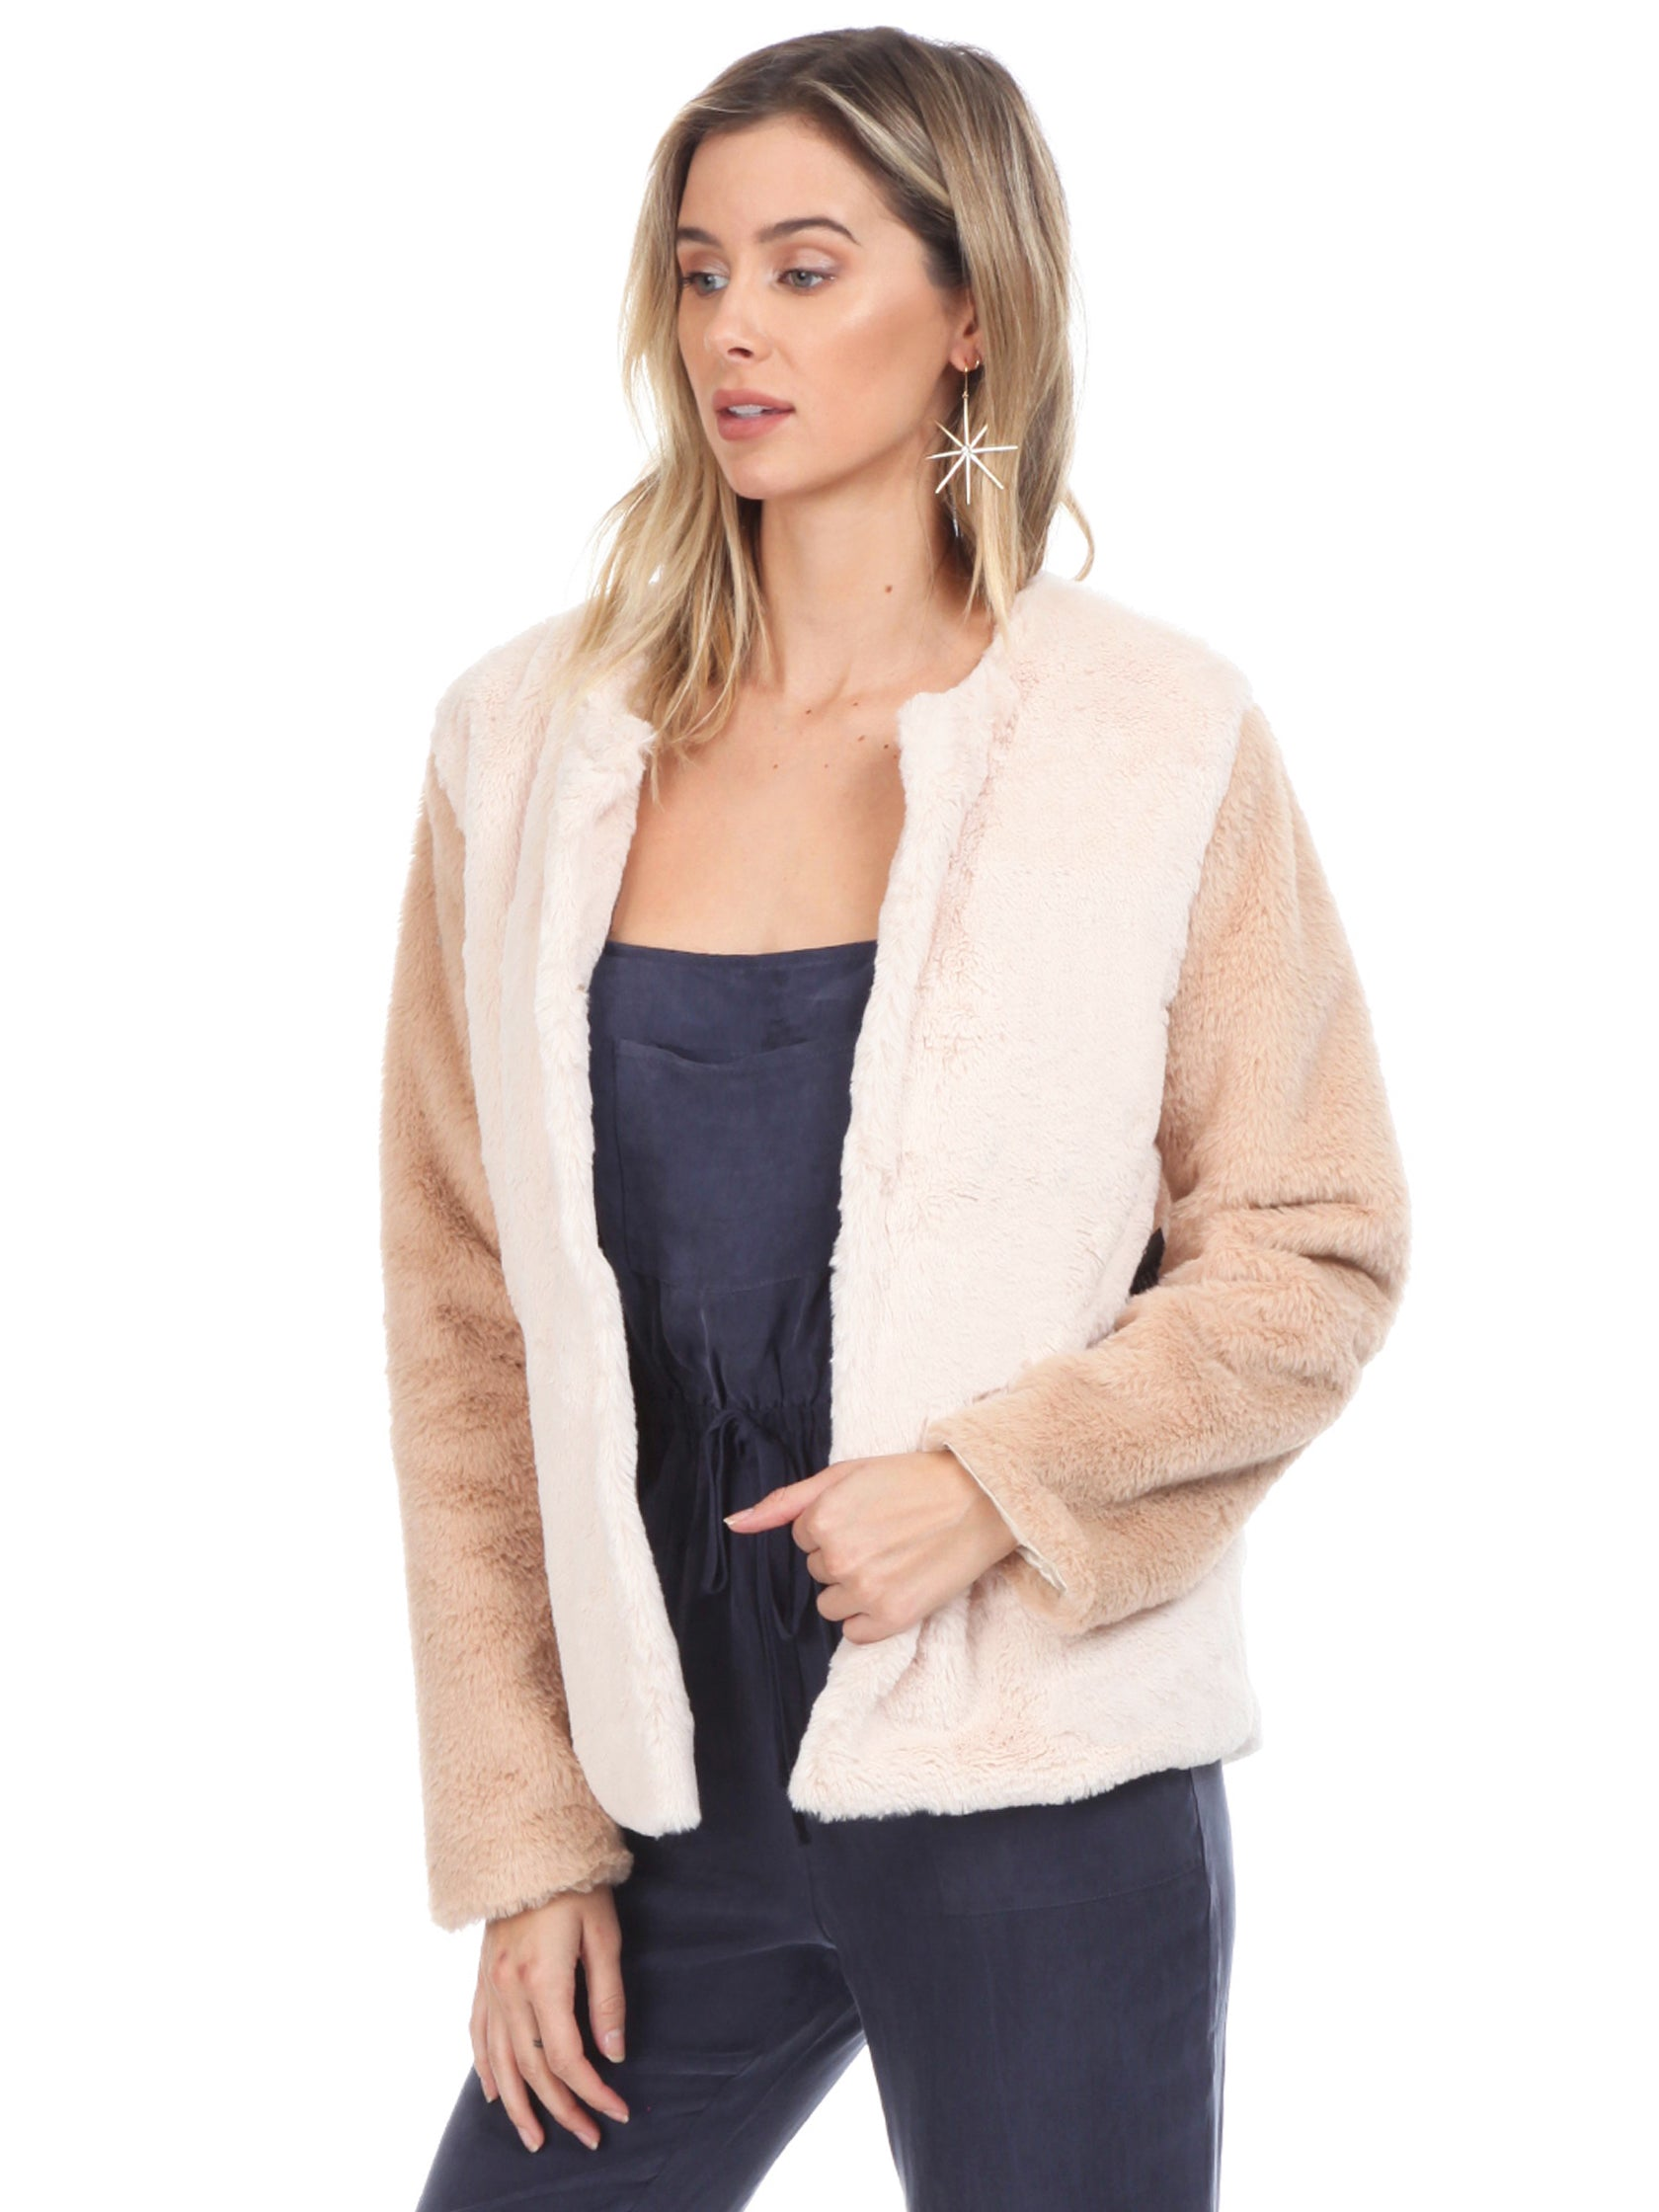 Women wearing a jacket rental from WYLDR called Heidi Faux Fur Jacket